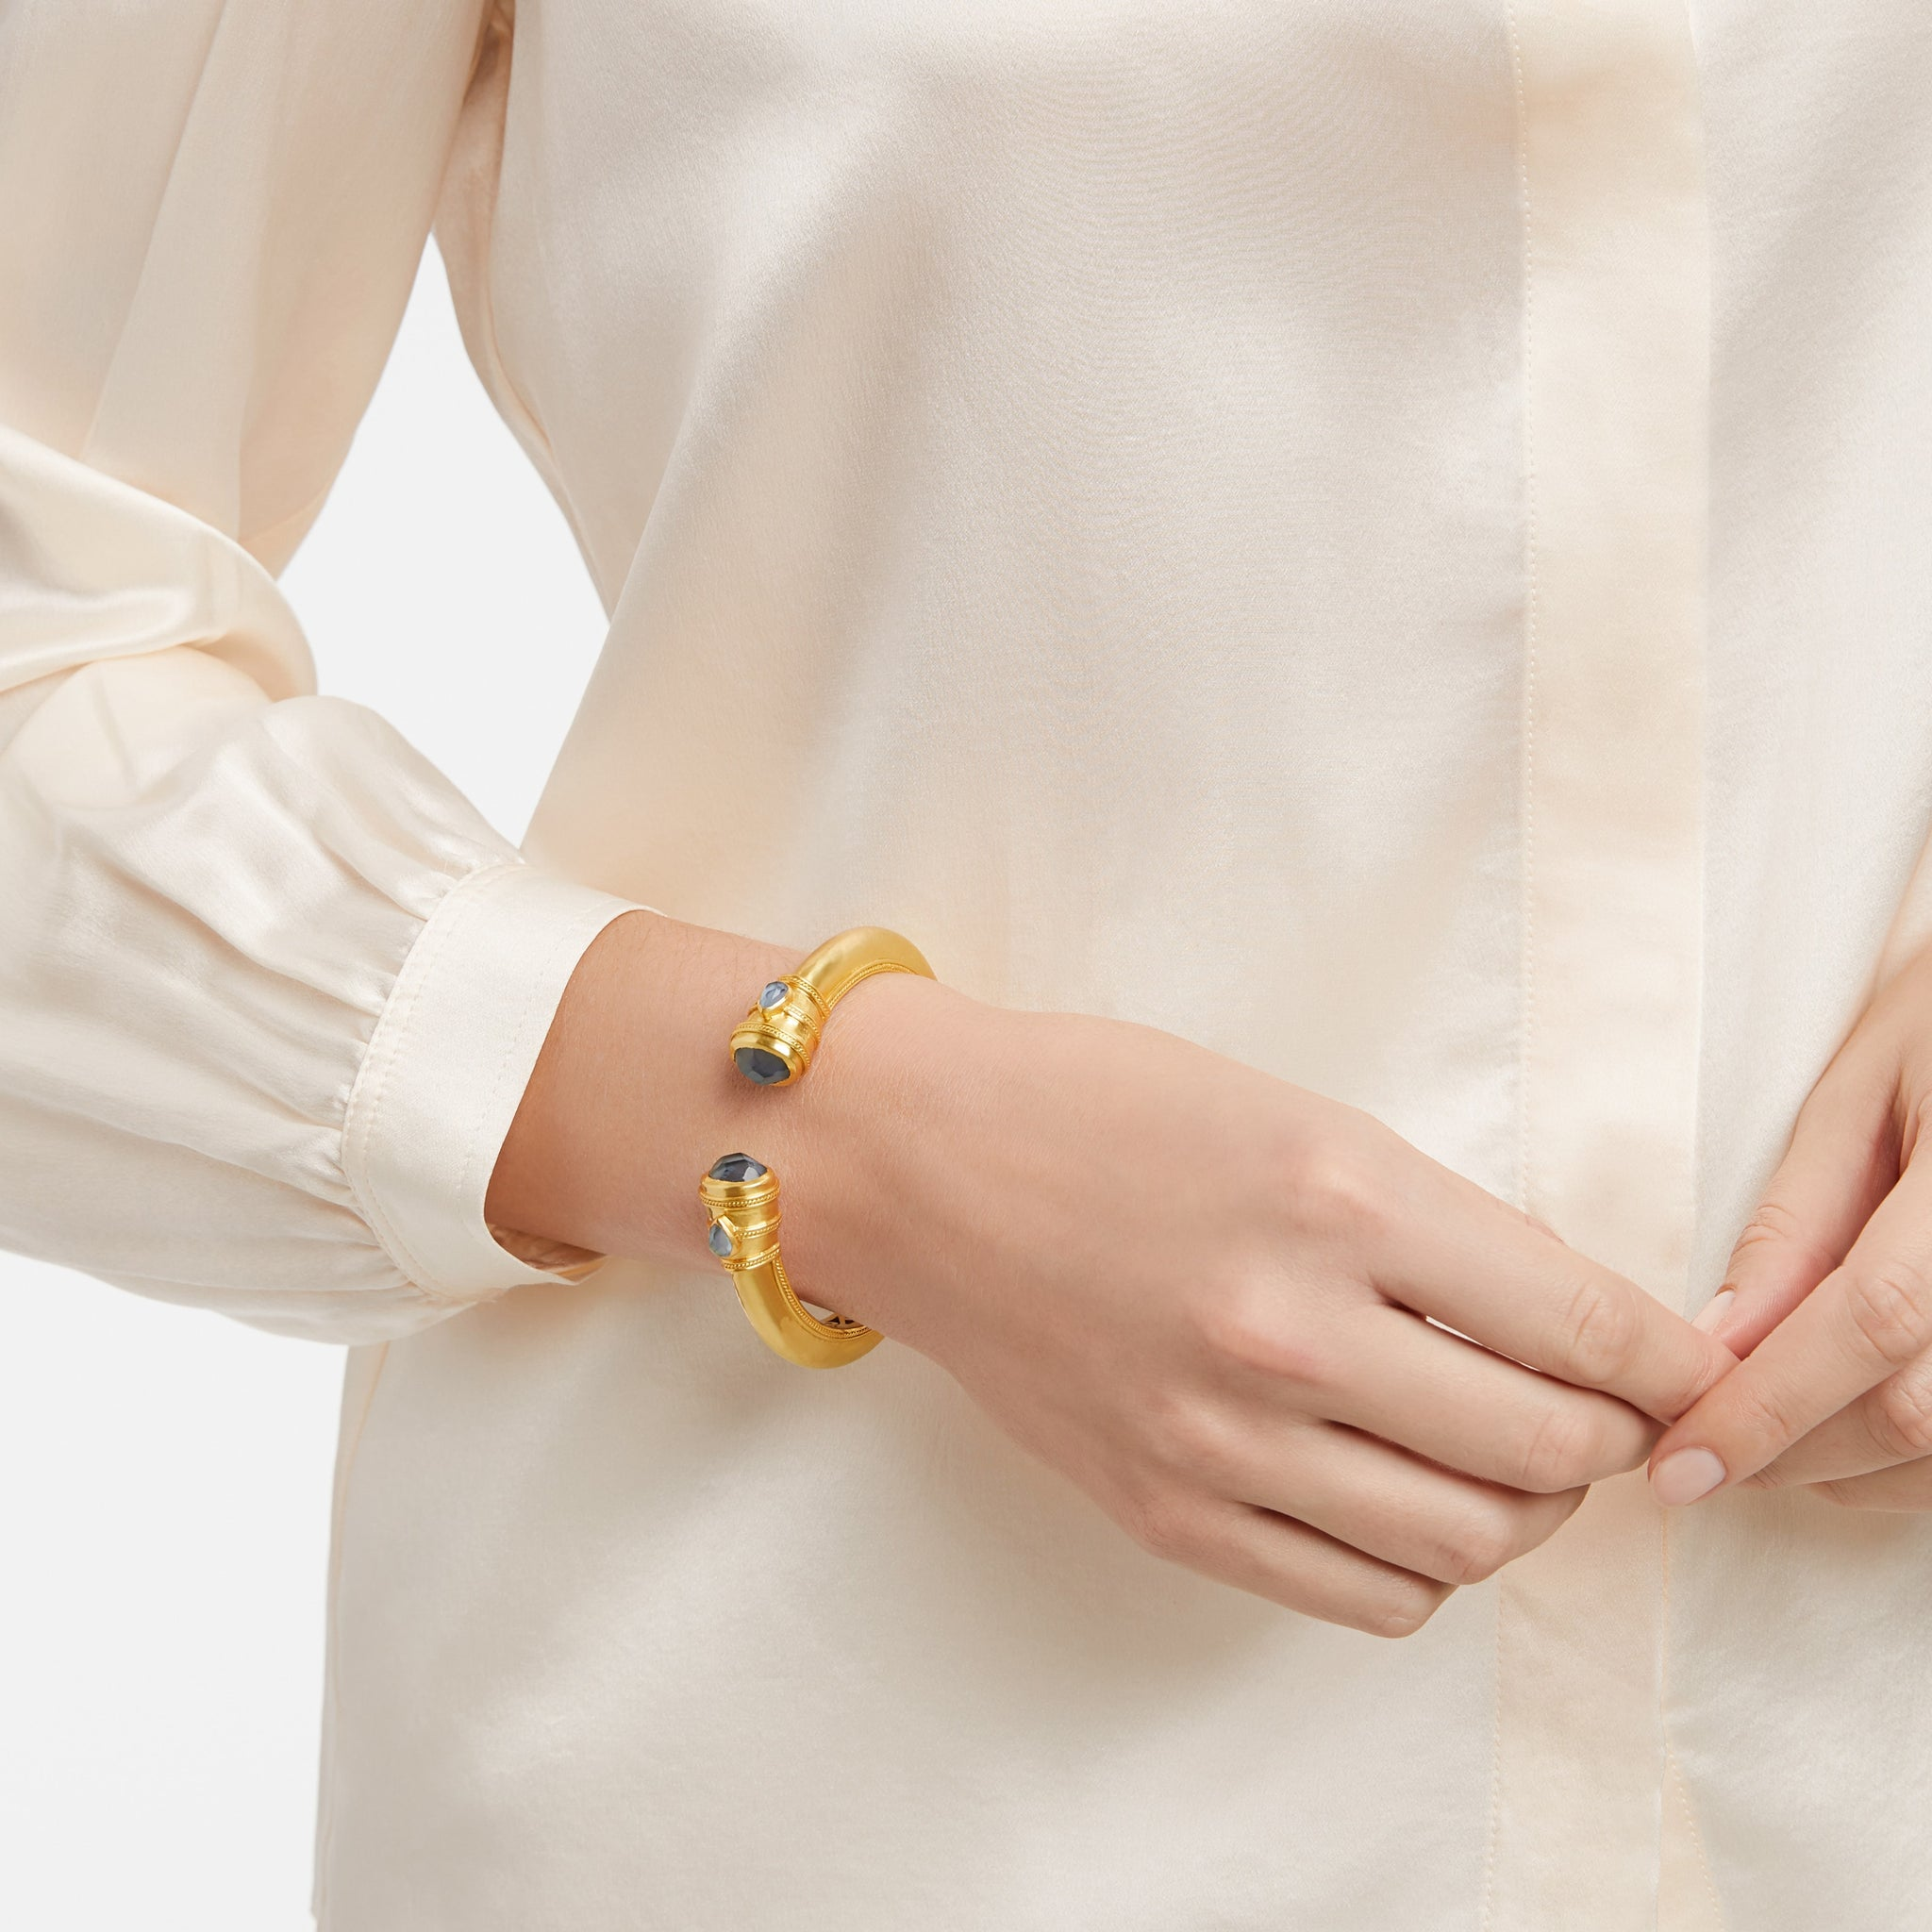 Cassis, a Julie Vos Hinge Cuff bracelet on the wrist of a woman, carousel, roll-over